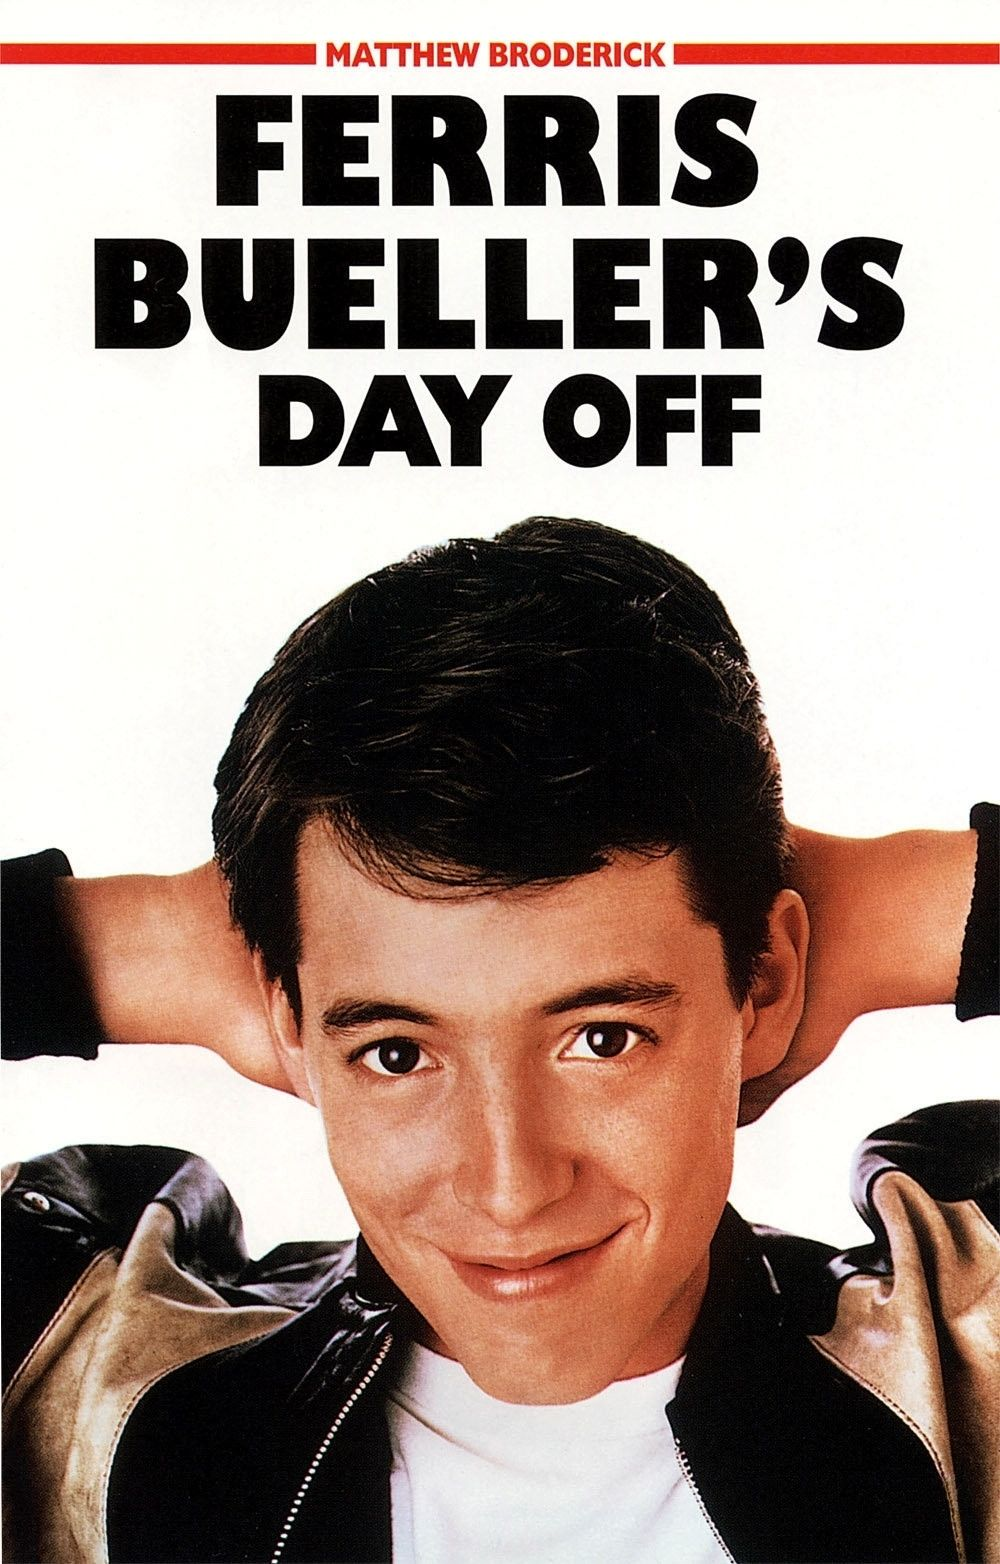 Ferris Bueller S Day Off Awesome Movie Love Watching This With